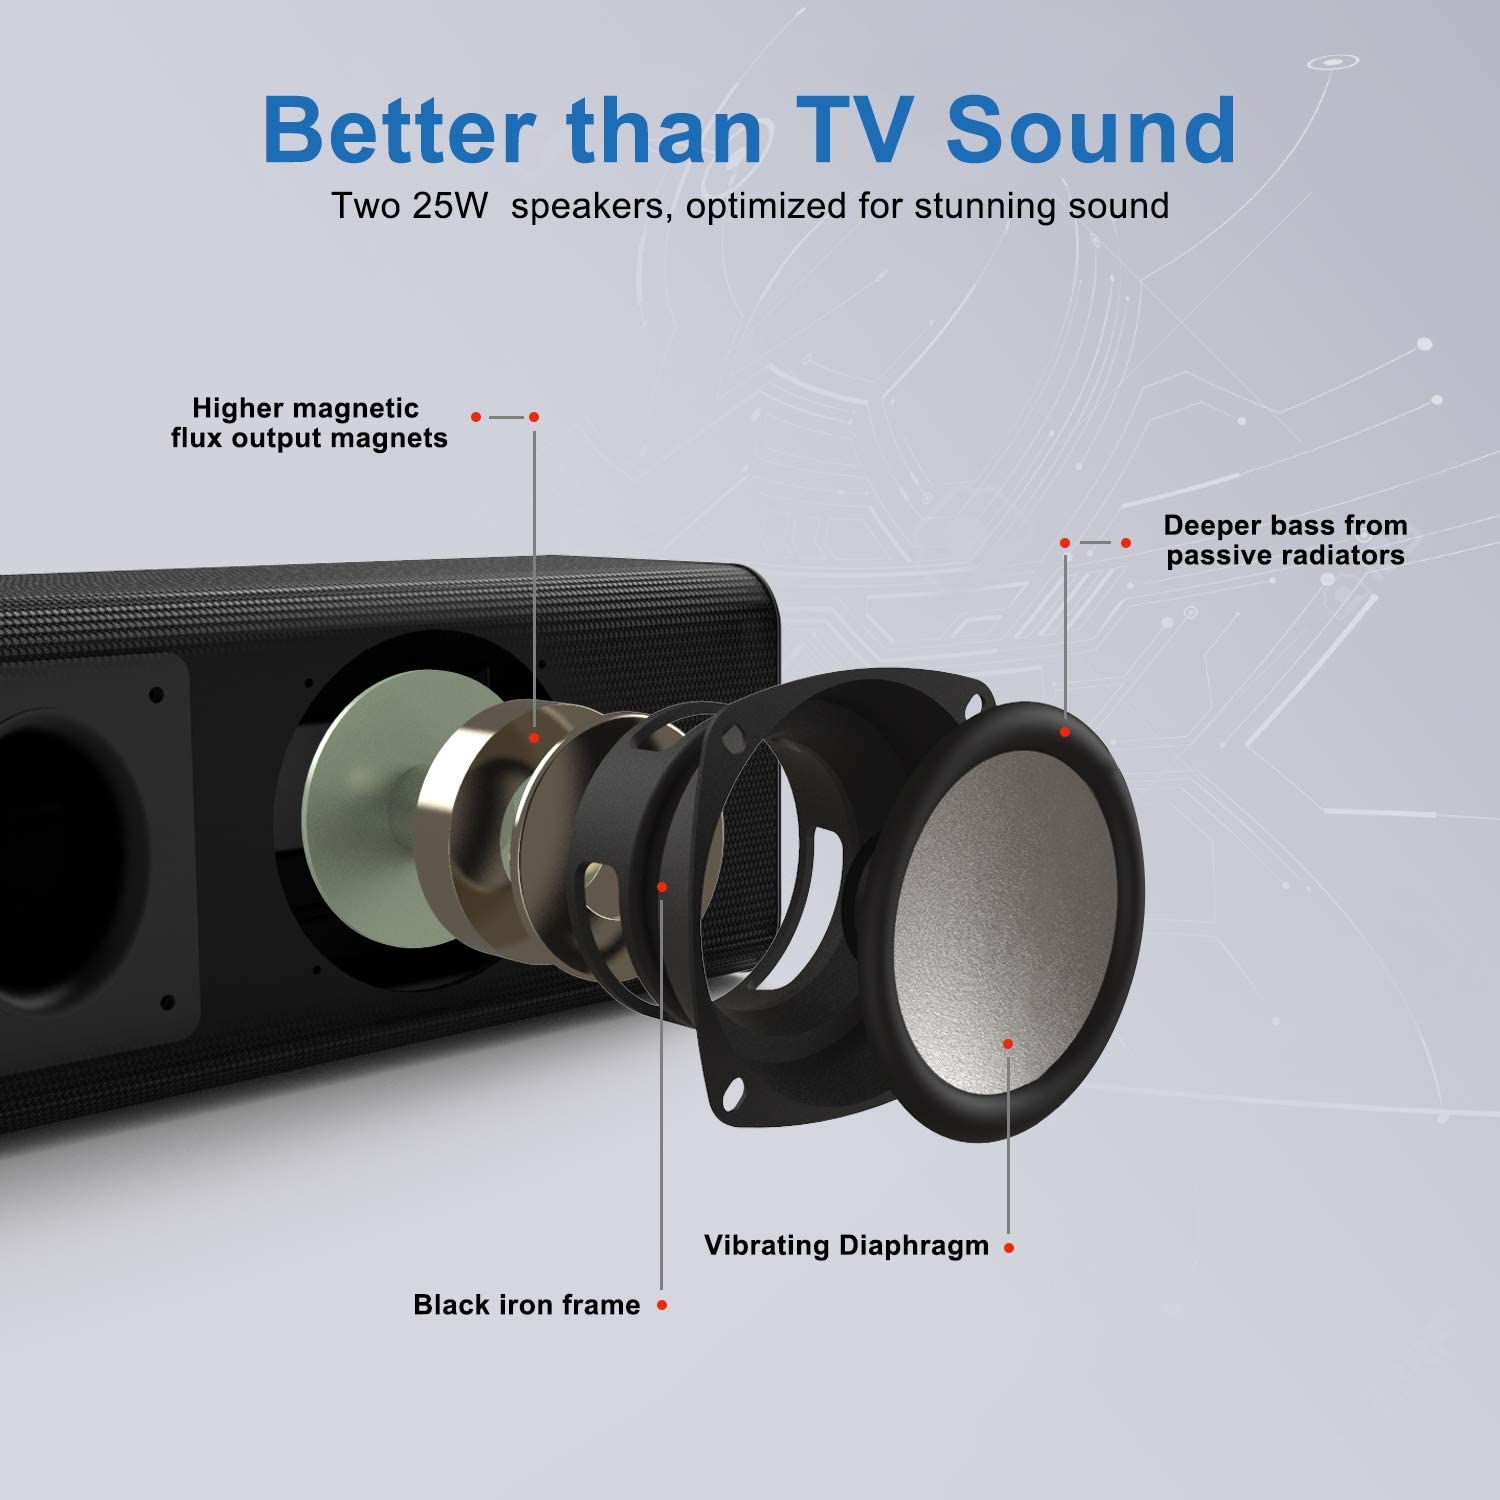 Buy BESTISAN Sound Bar with Bluetooth 5.0, Wired Sound Bars for TV, Home  Theater Audio Sound Bar with Sub-Out Port Works with Subwoofer (50 Watts,  Bass Adjustable, Deep Bass, 20 Inch) 2021